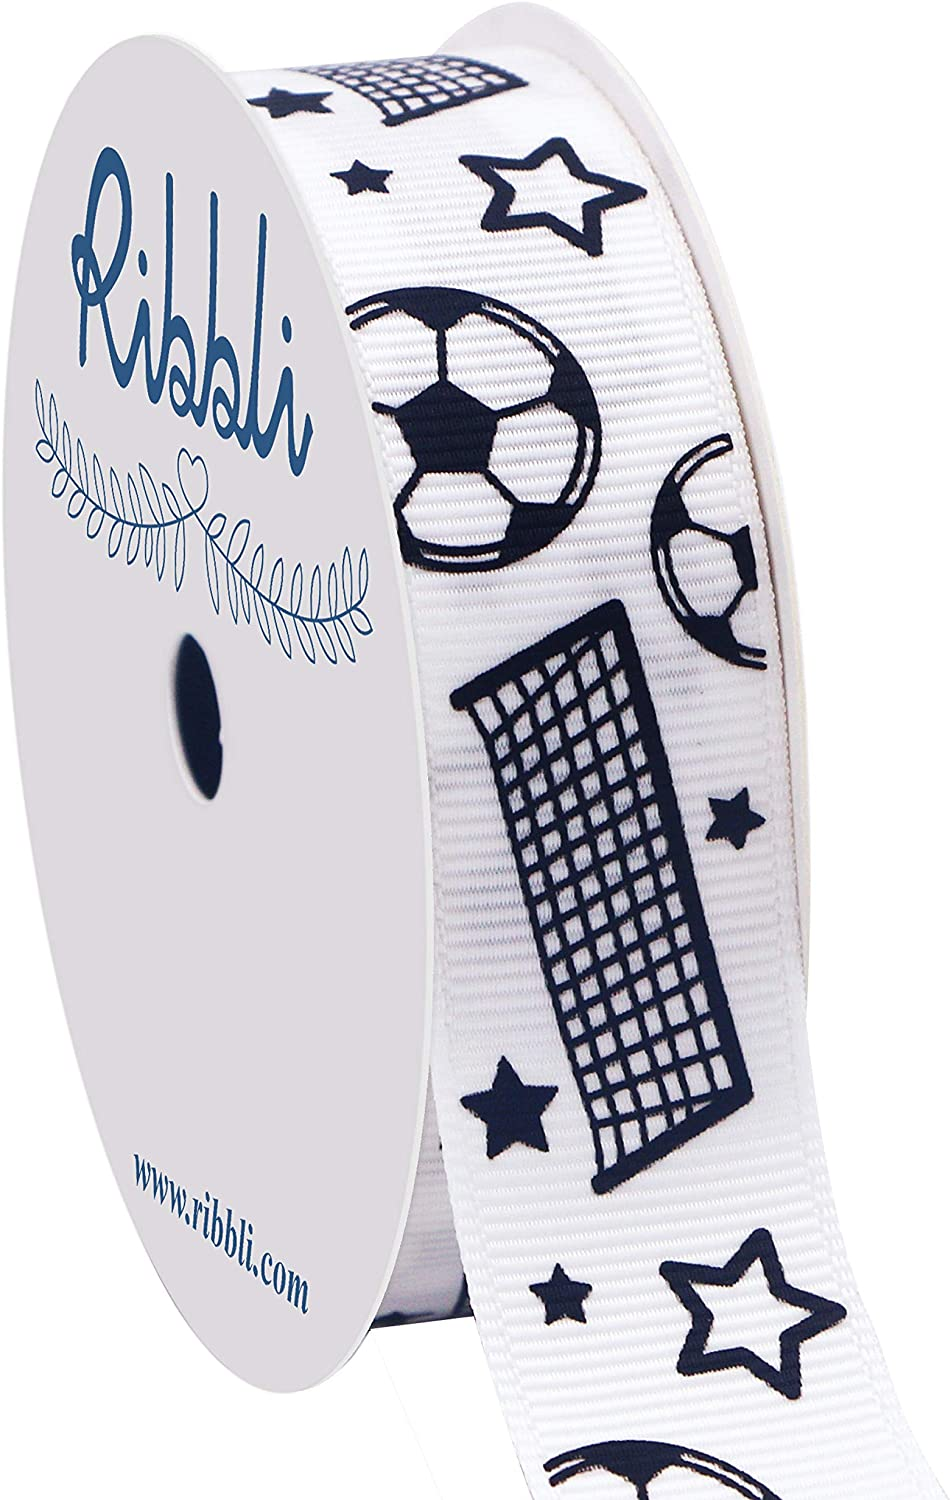 Ribbli Grosgrain Soccer Craft Ribbon,7/8-Inch,10-Yard Spool, White/Black, Use for Team Hair Bows,Wreath,Sport Lanyards,Gift Wrapping,Party Decoration,All Crafting and Sewing